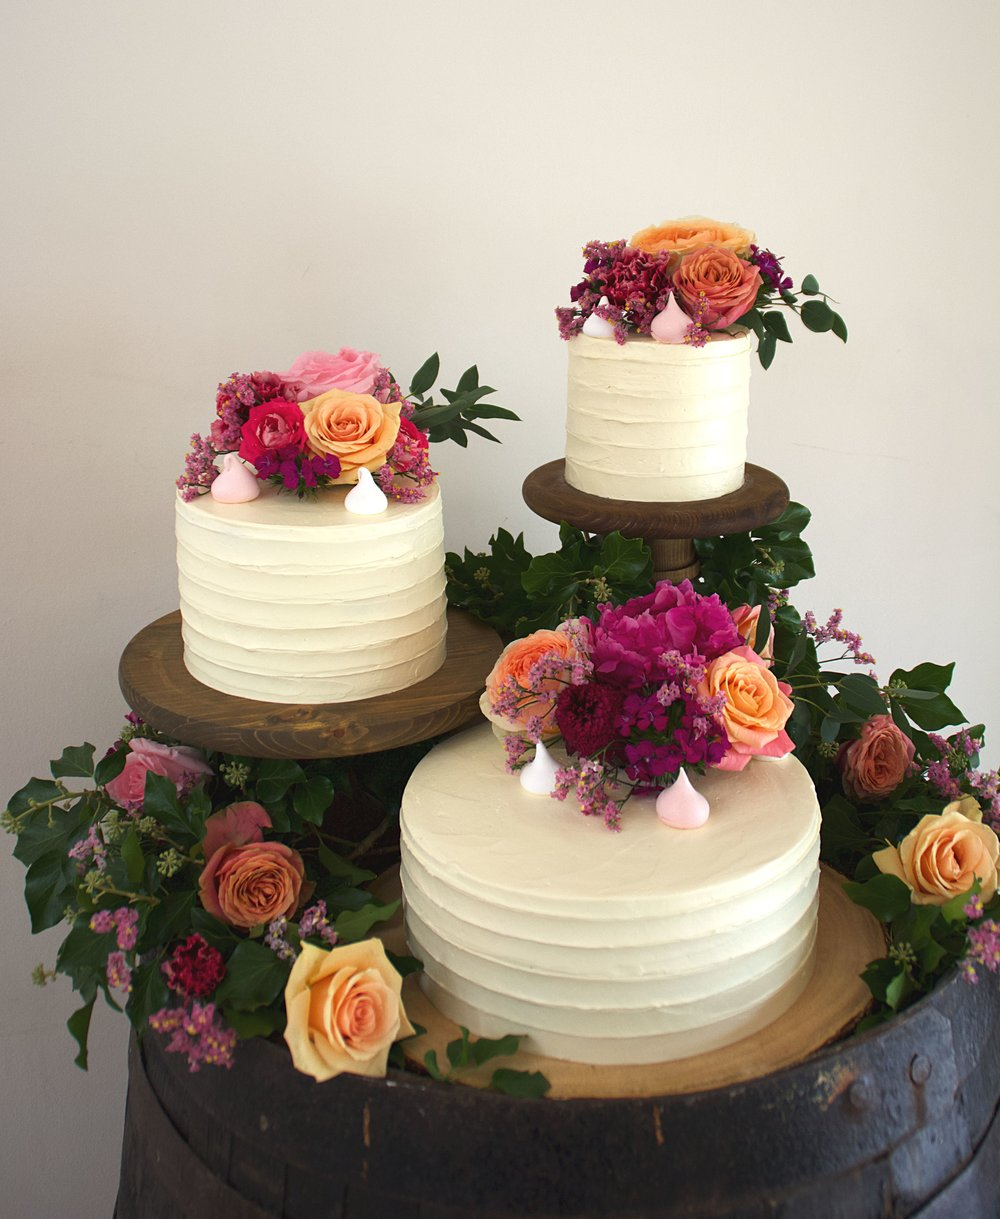 Rustic_buttercream_three_tiers_fresh_florals_top_view.jpg